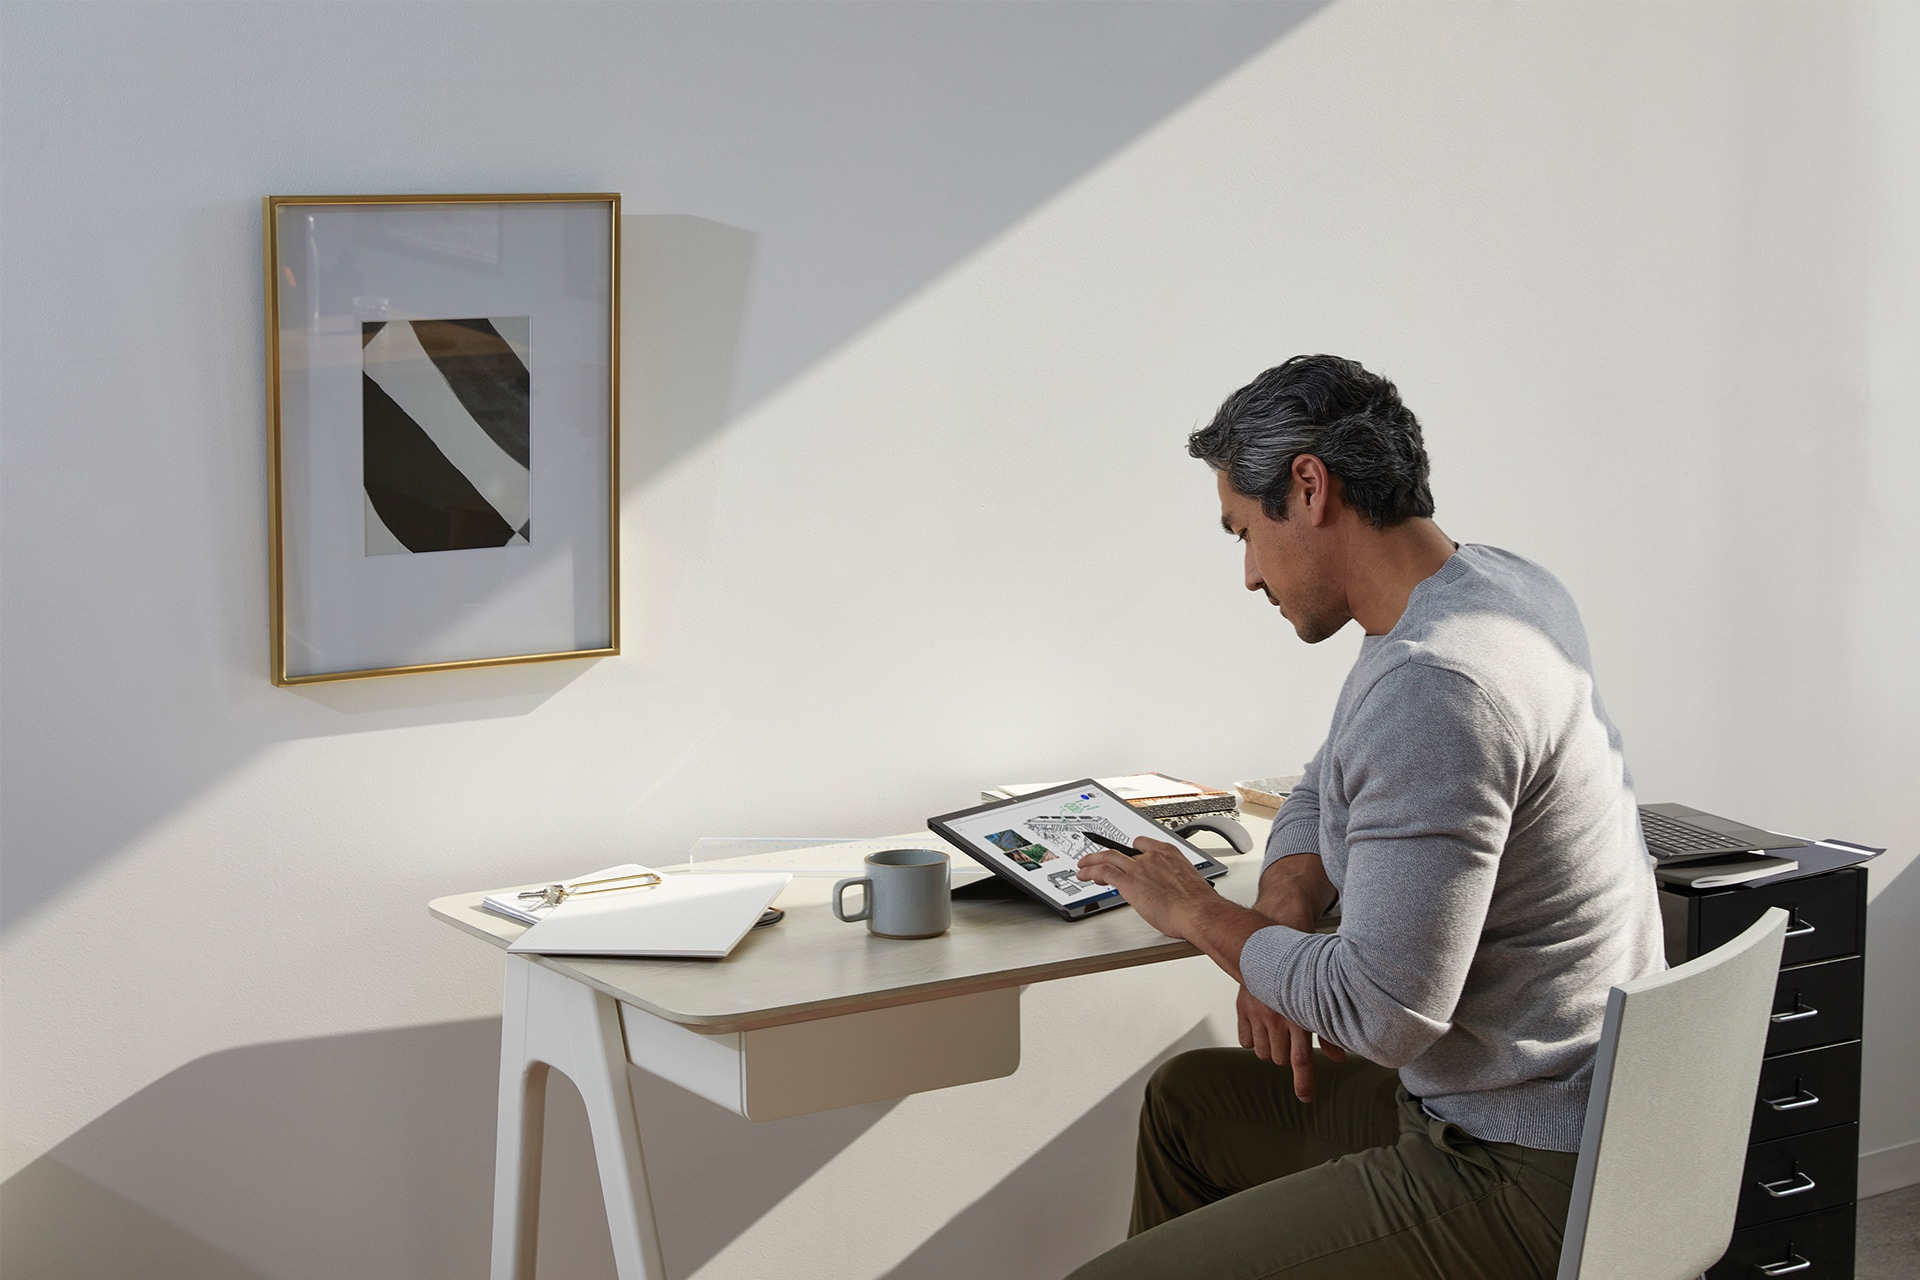 A person working from home works with Surface Pen on his Surface Pro